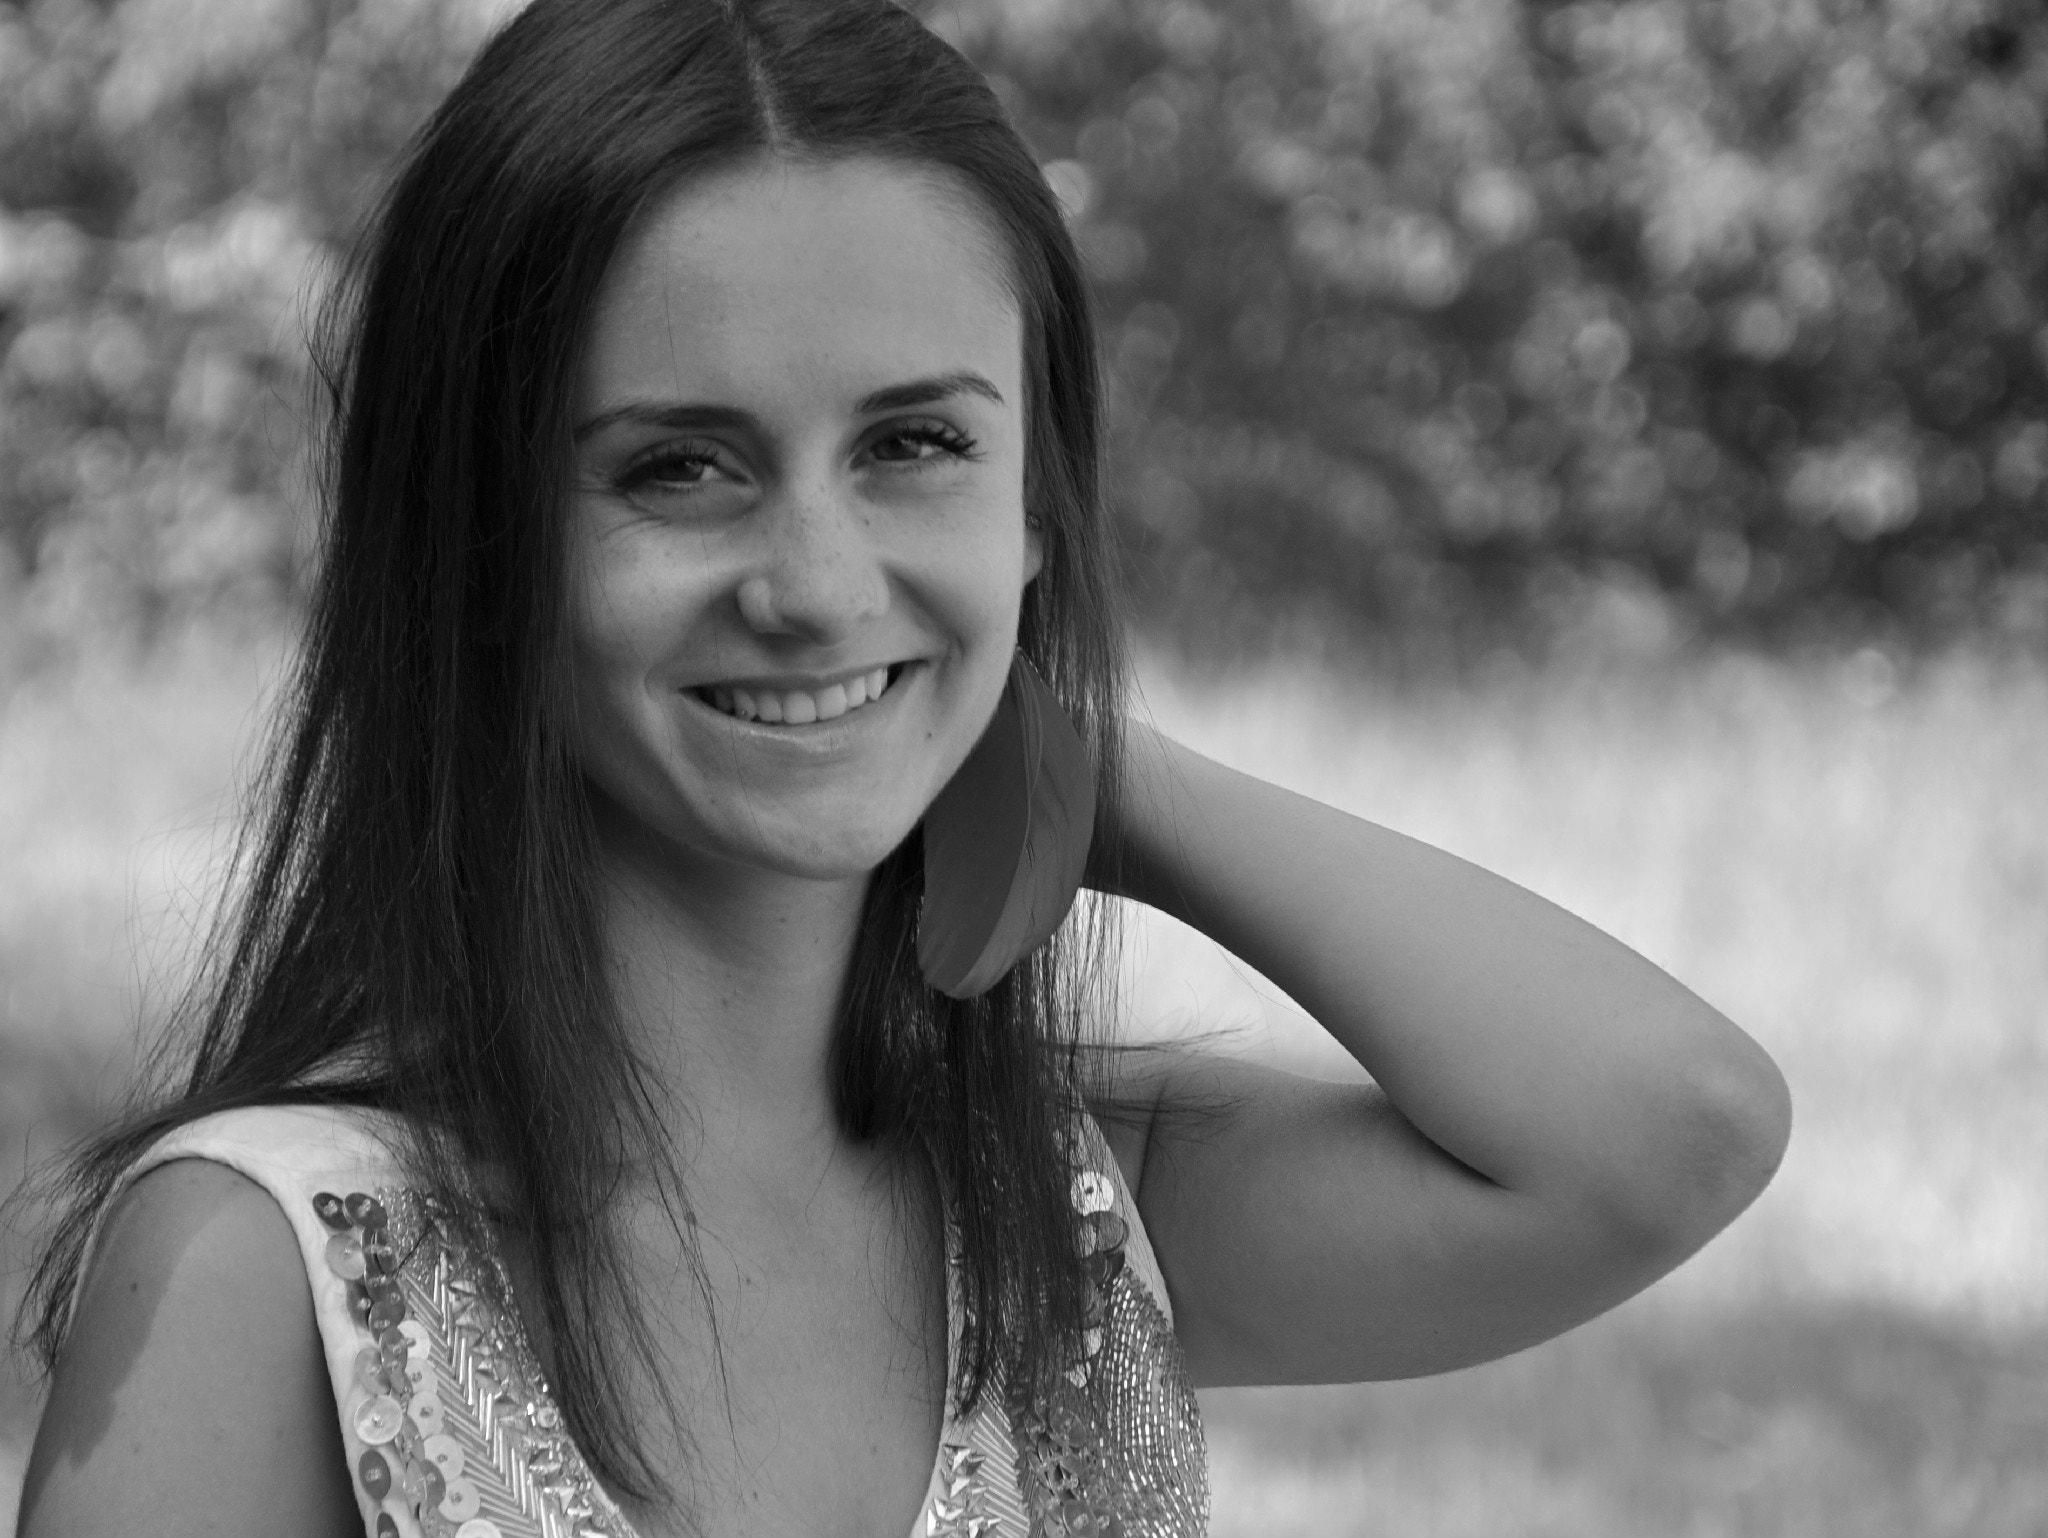 Photograph Smile in b/w by Mihaela Floriana Soare on 500px